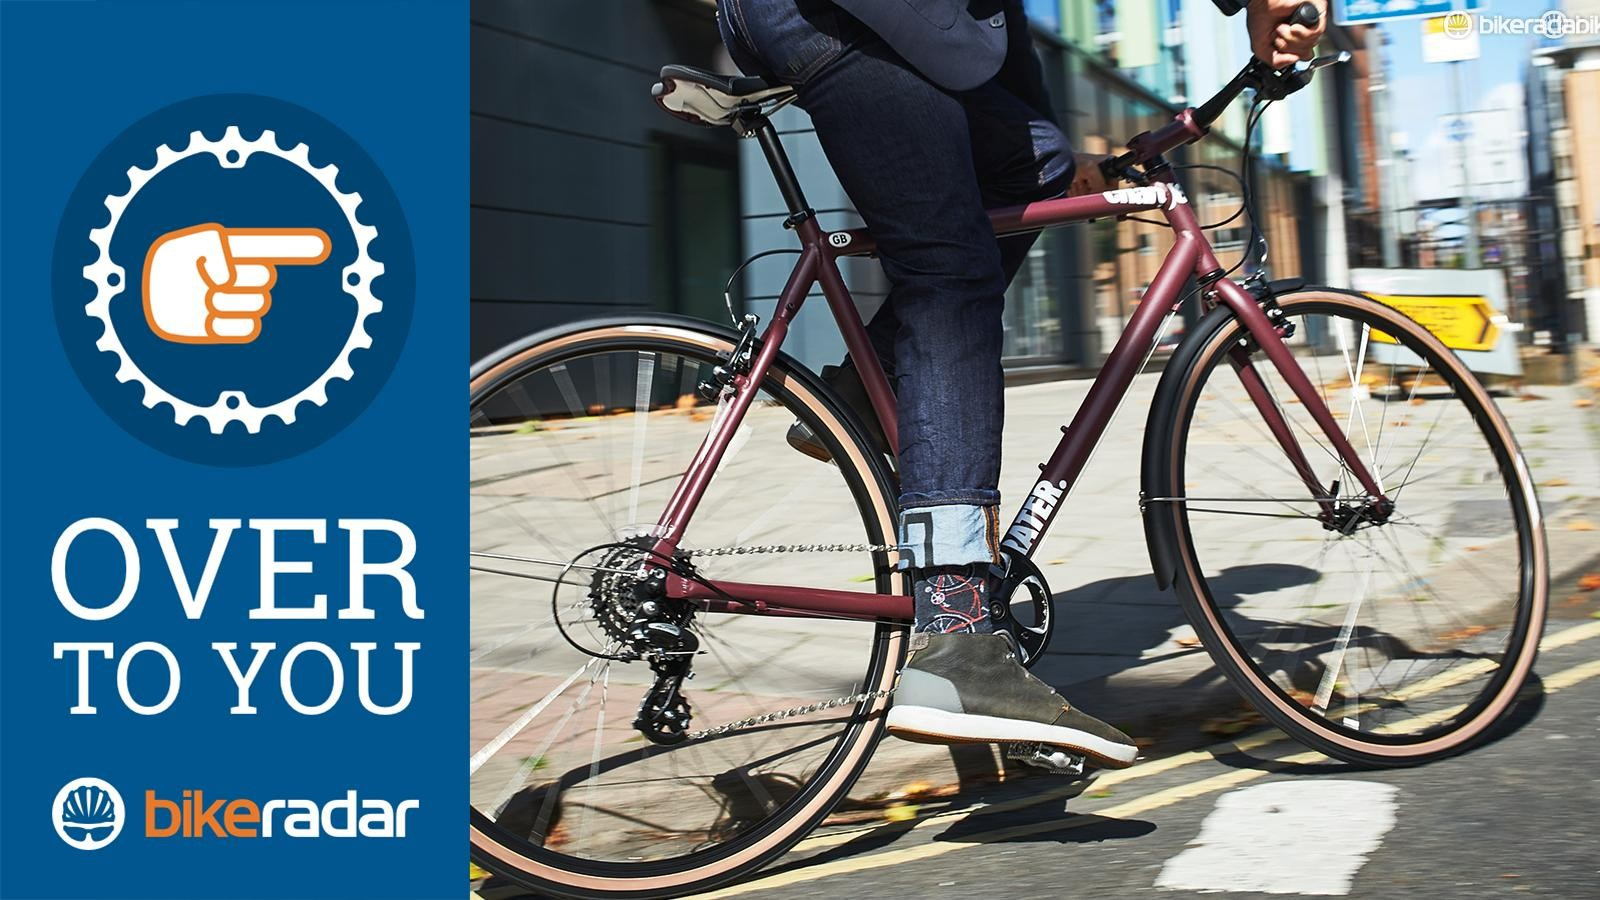 Do you think taxing or licensing bicycles can be an effective way to fund cycling projects?